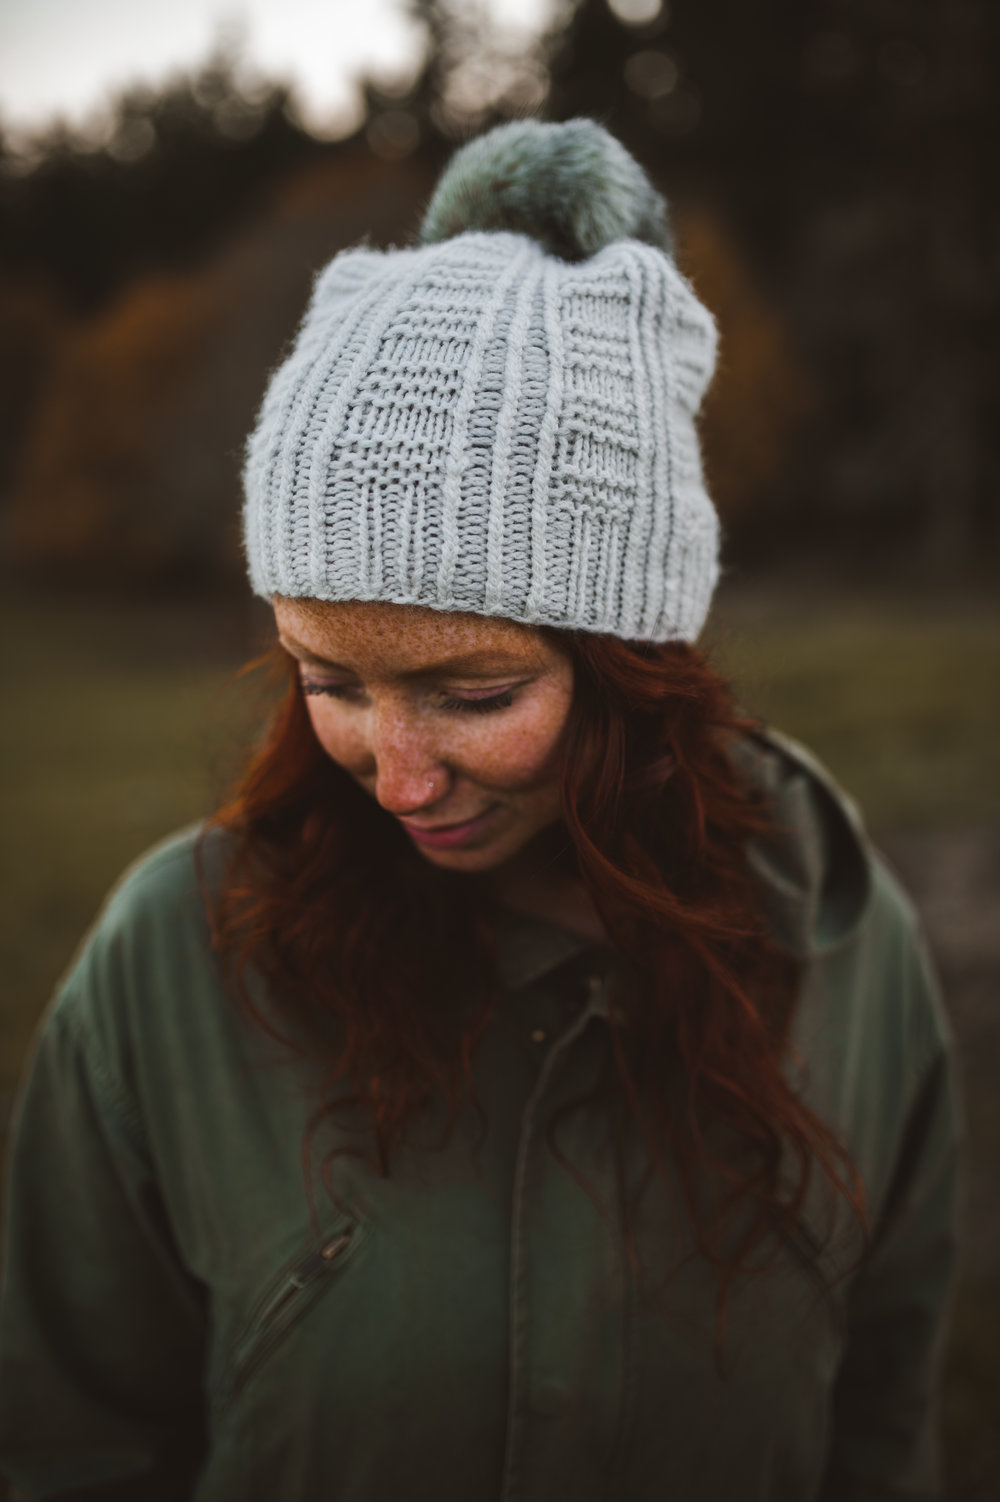 Tread Hat by Shannon Cook #treadhat #withinknits